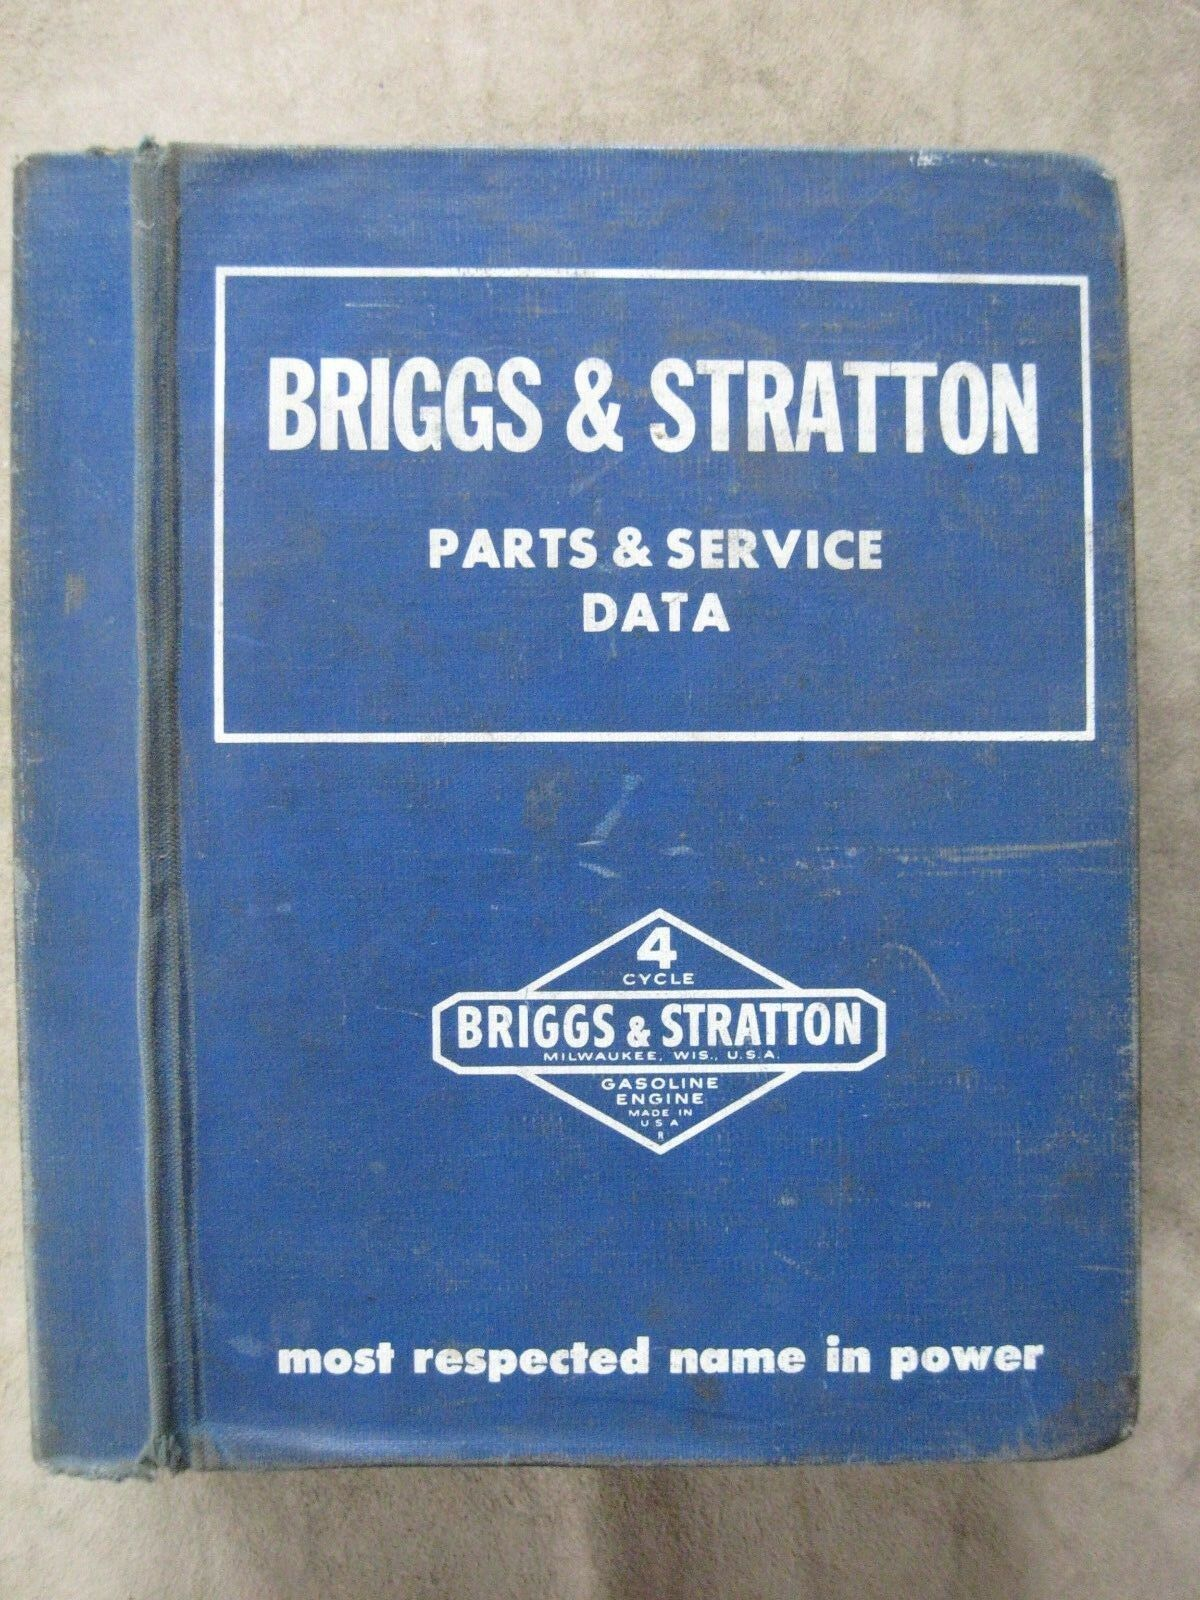 Briggs Stratton Engine Parts Service Manual 6986 Picclick And Diagram List For 1 Of 8only Available